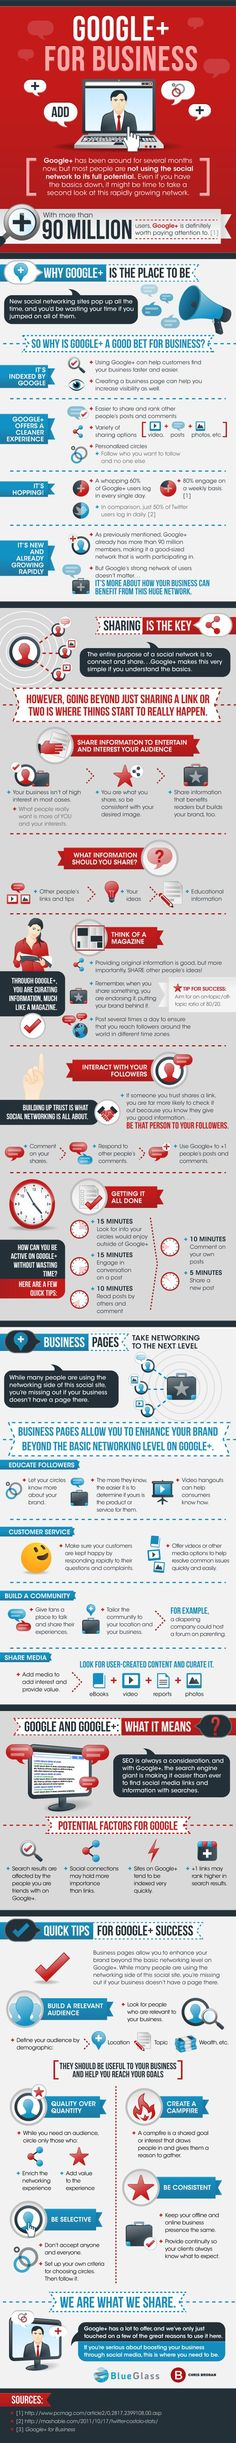 Google+ For Business: Why You MUST Take It Serious [Infographic - anisesmithmarketing.com]